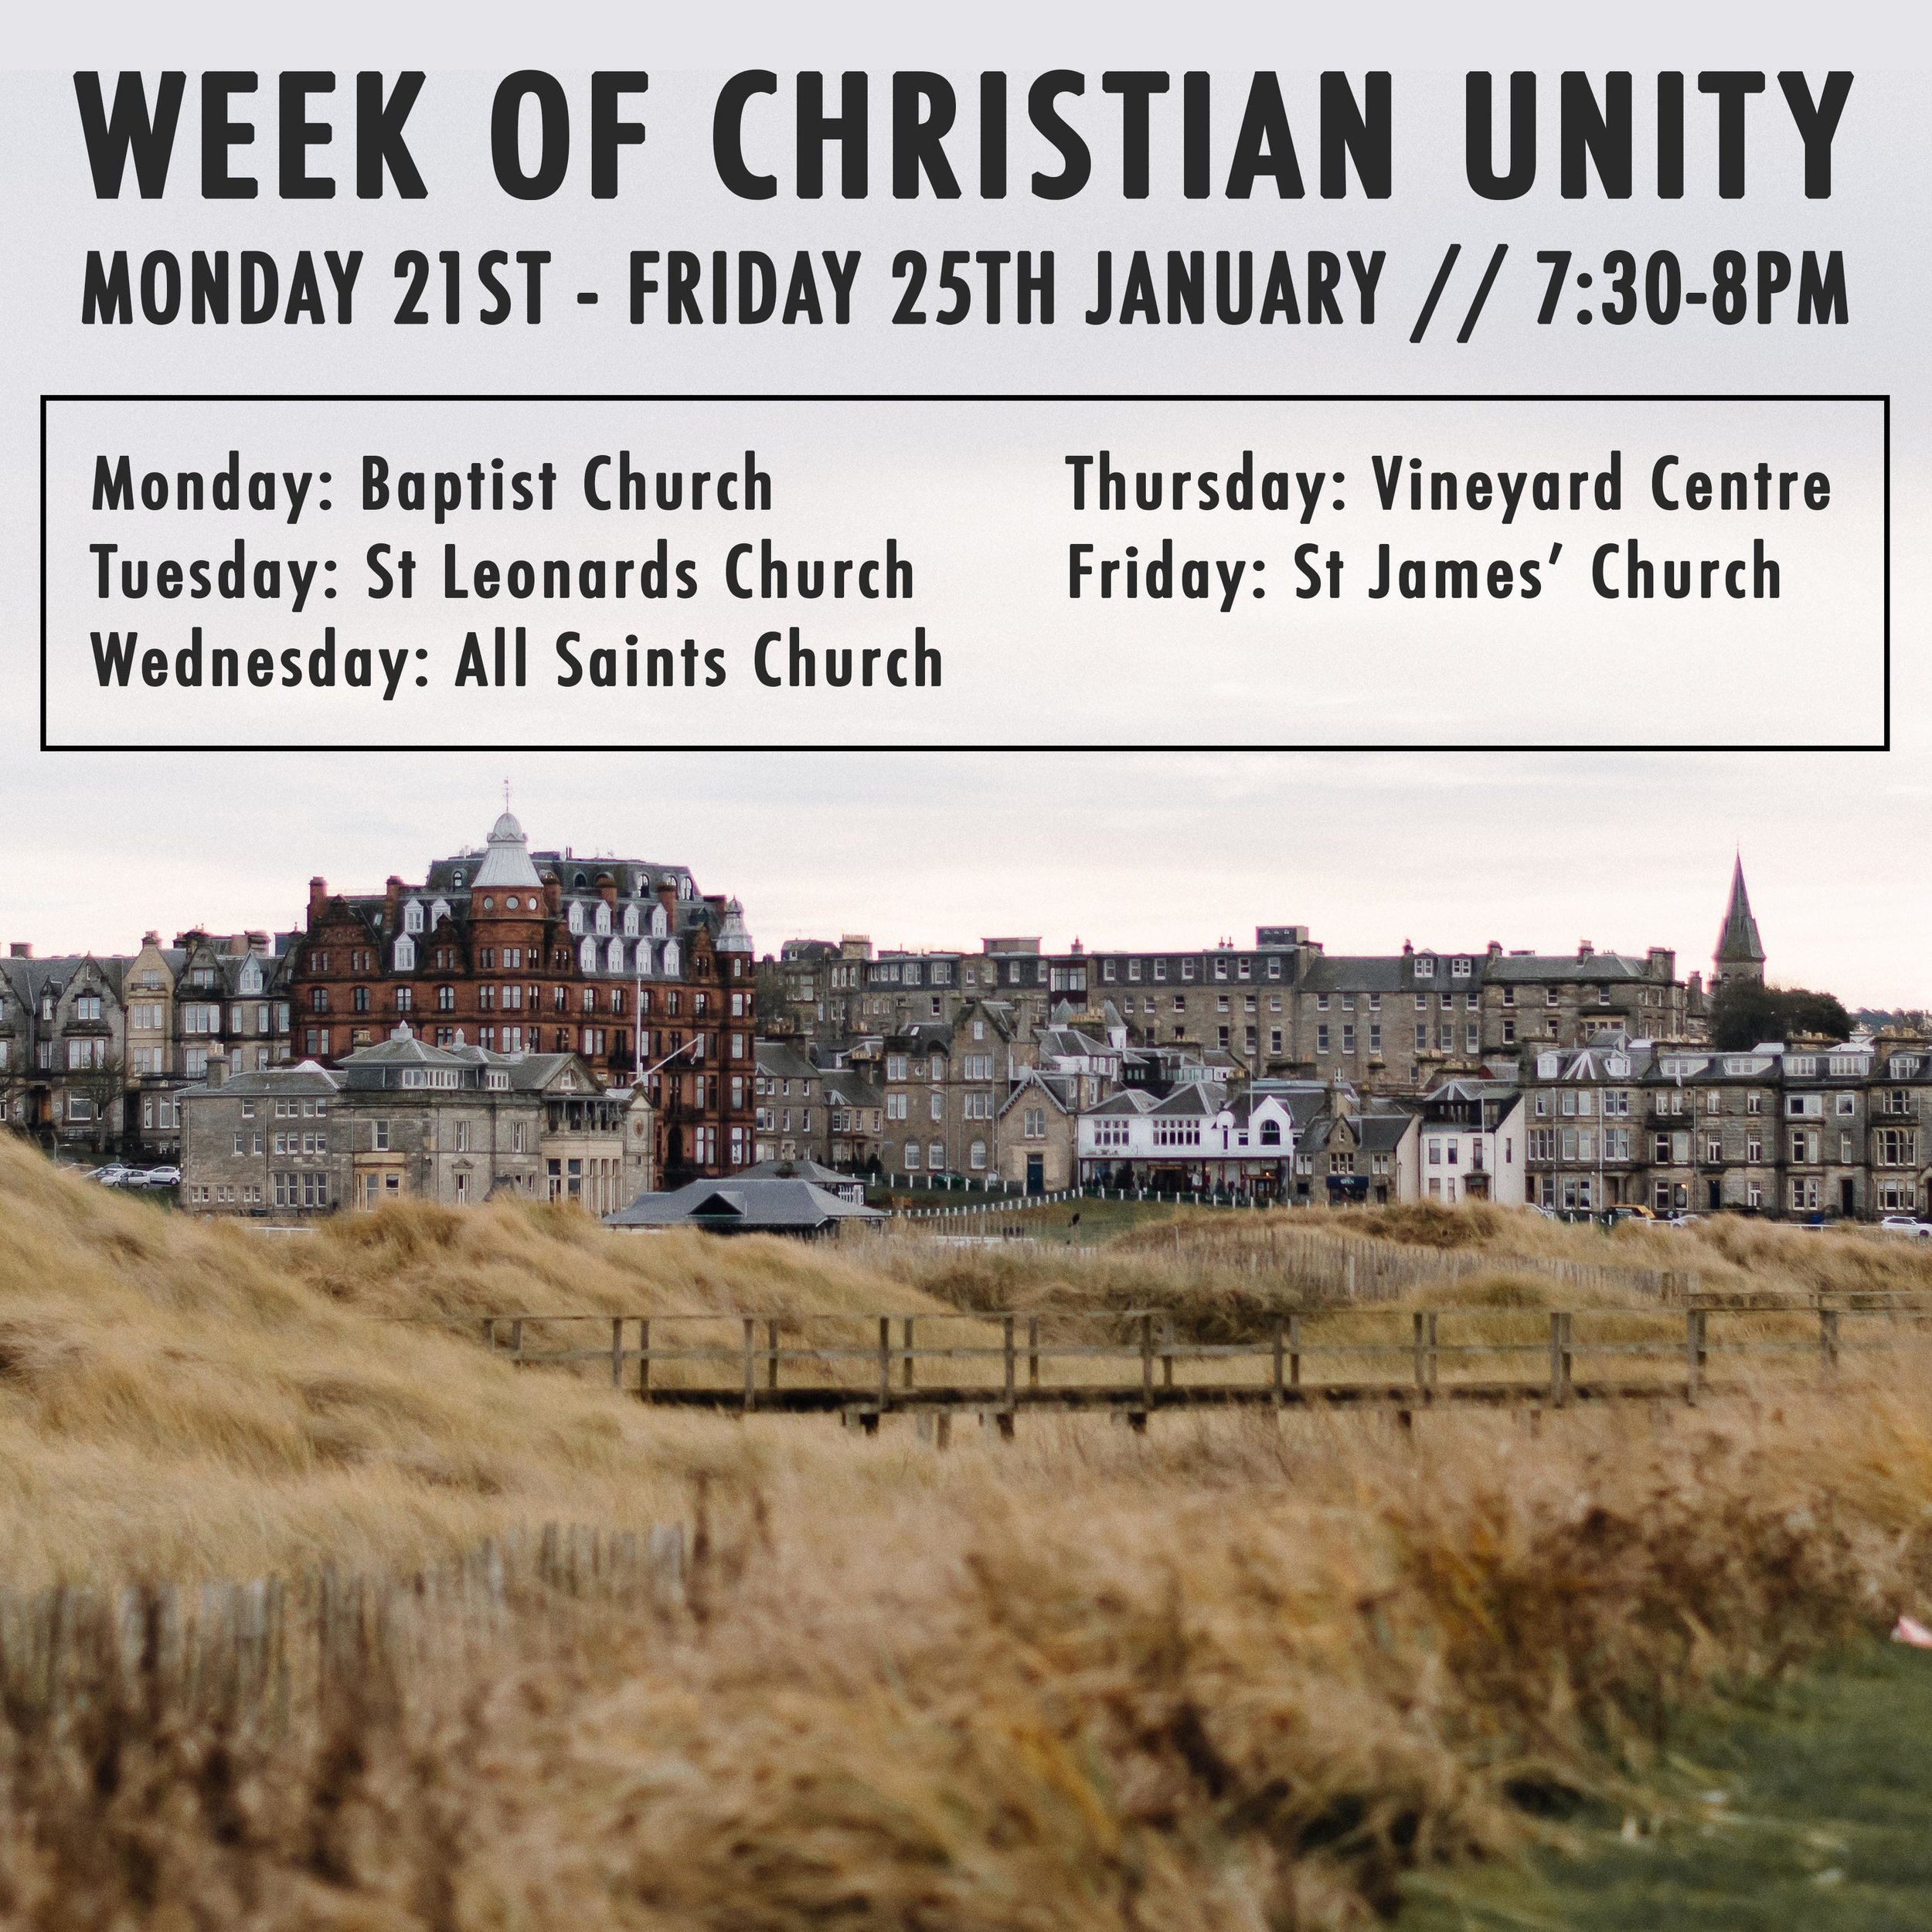 week of christian unity dates square.jpg